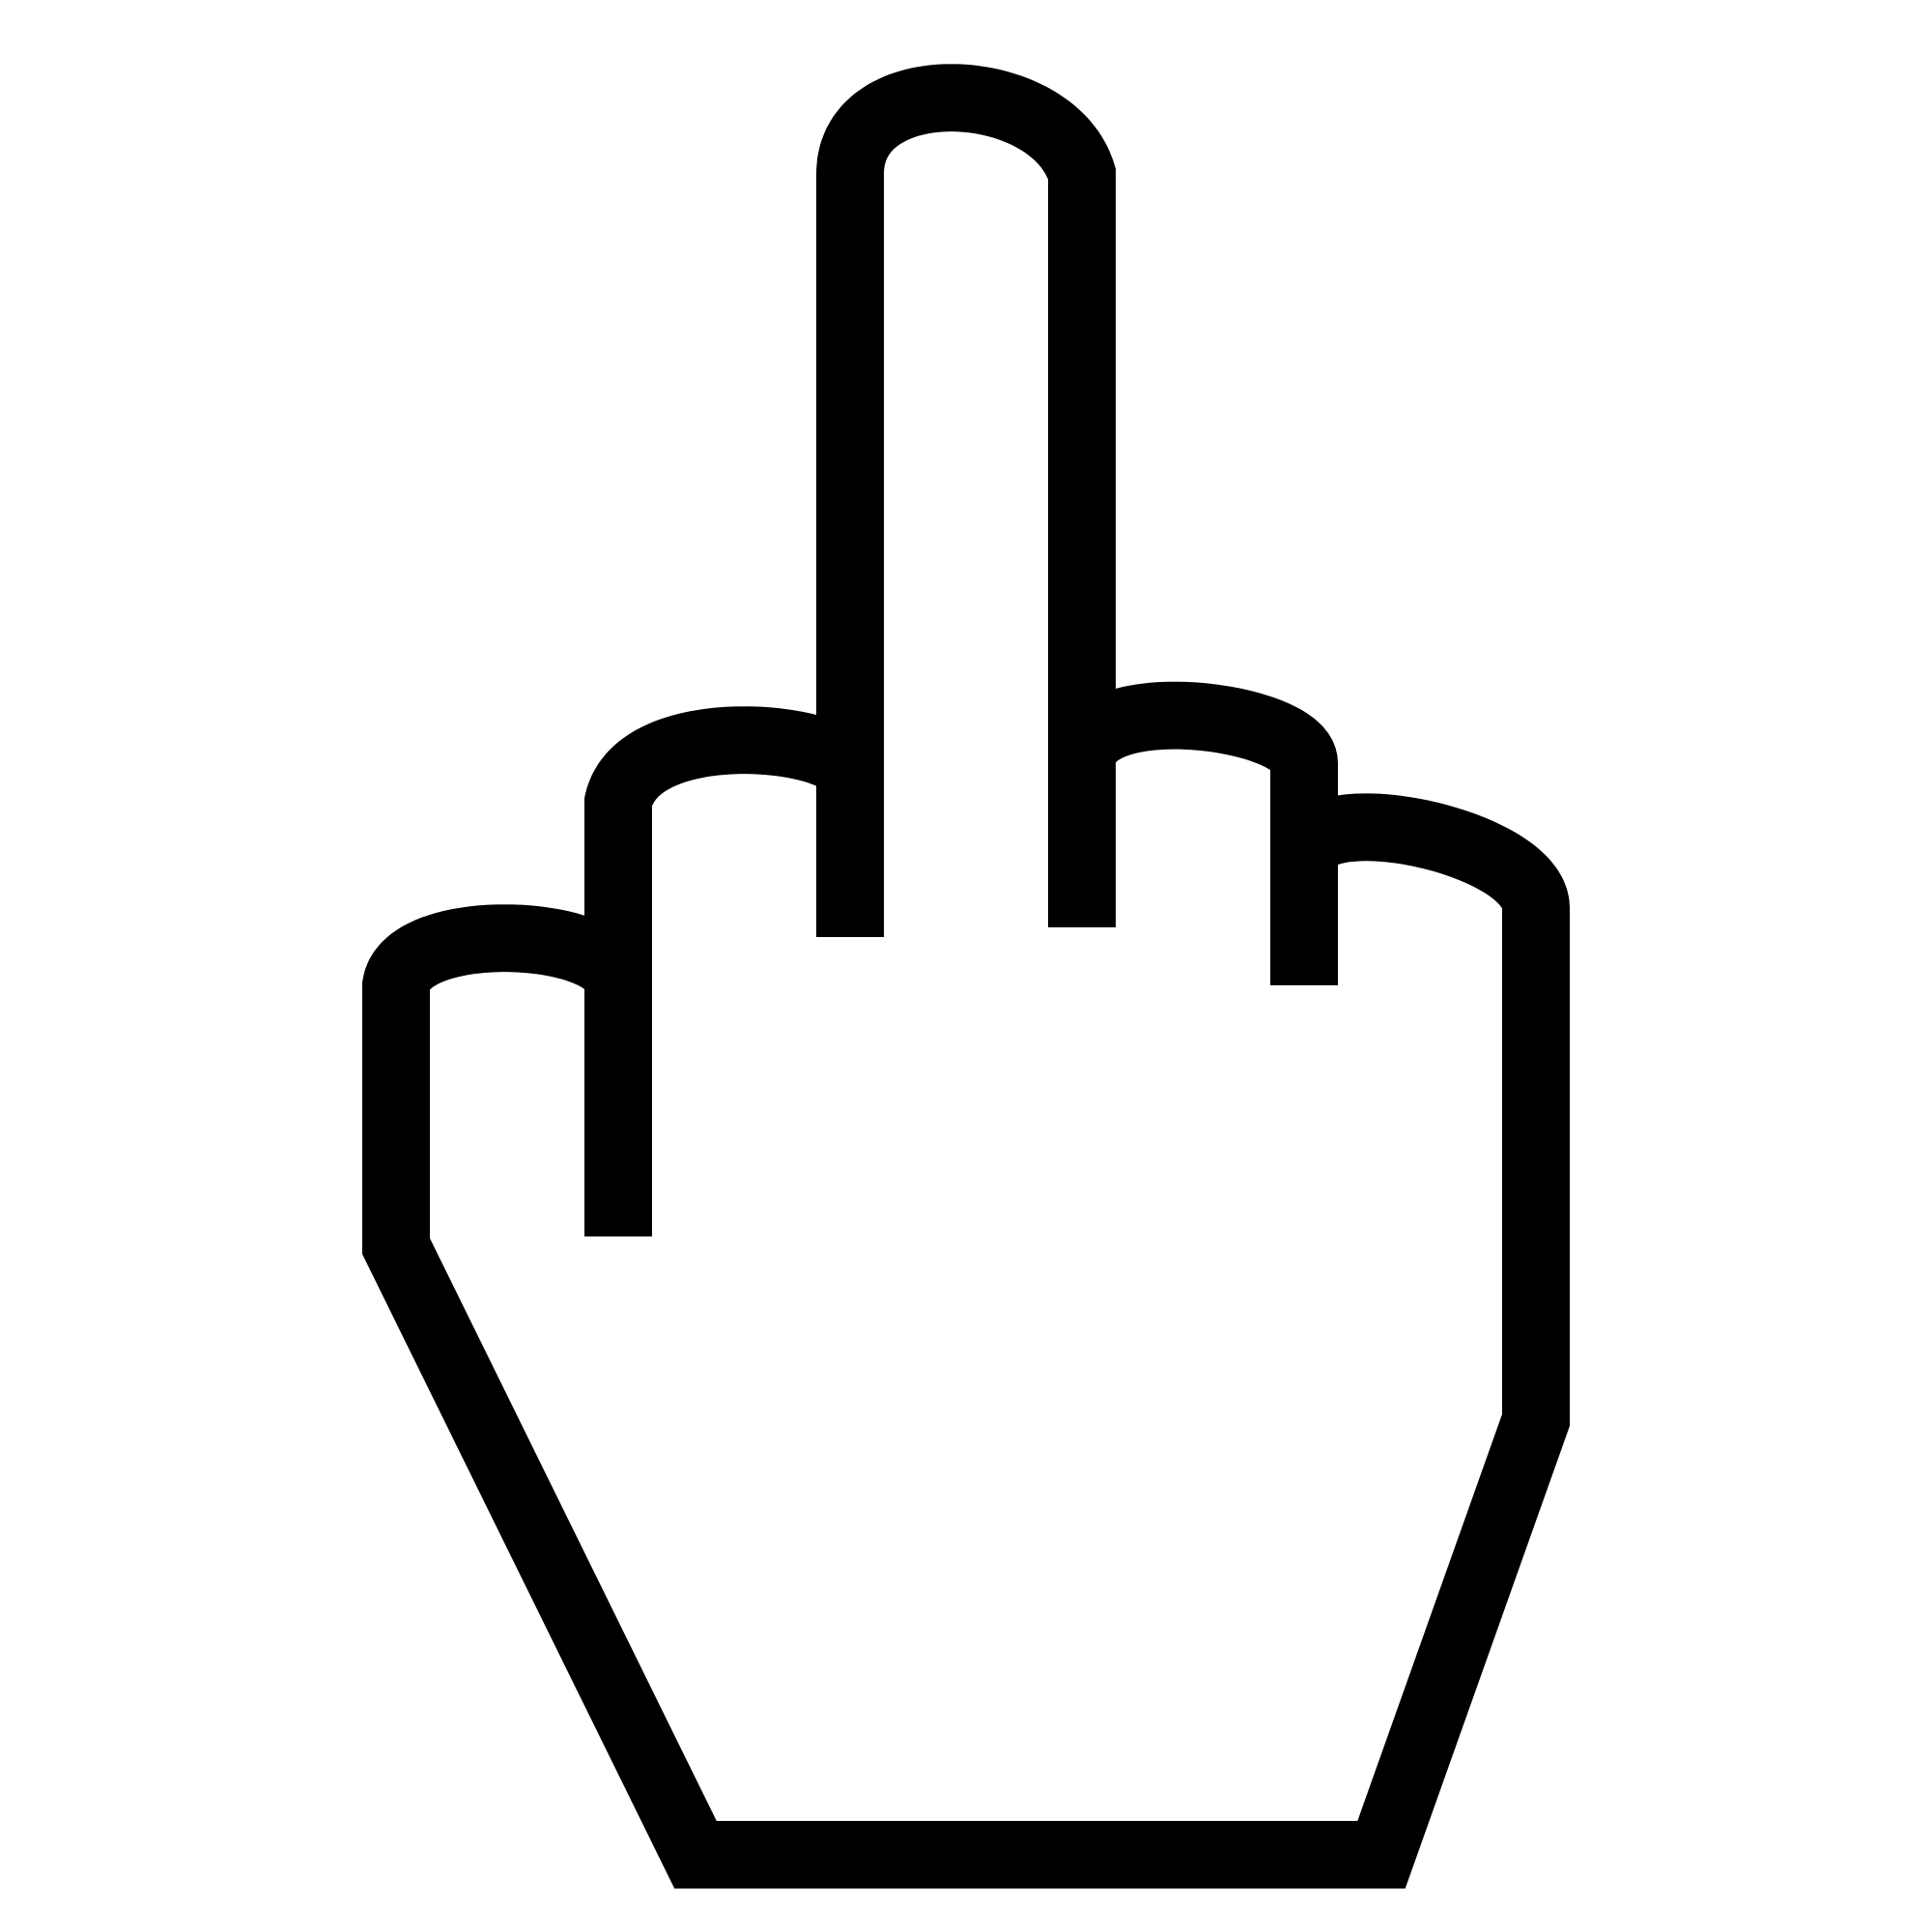 Middle finger silhouette png. File the gesture svg